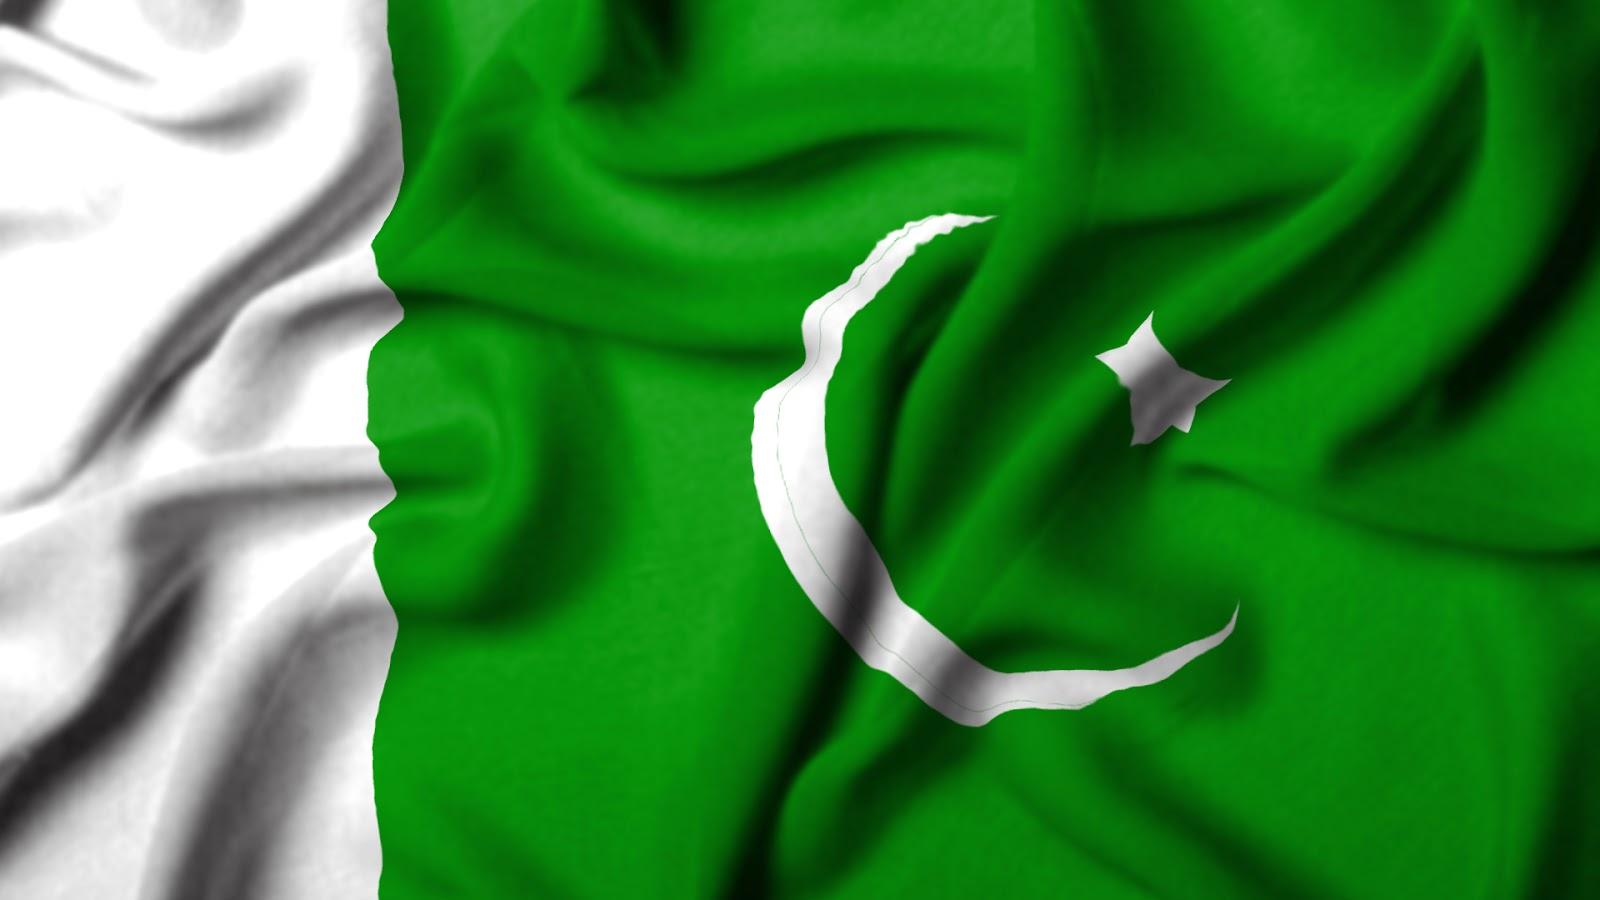 Pakistan flag i try it amb dadyal azad kashmir for 3d wallpaper for home in pakistan